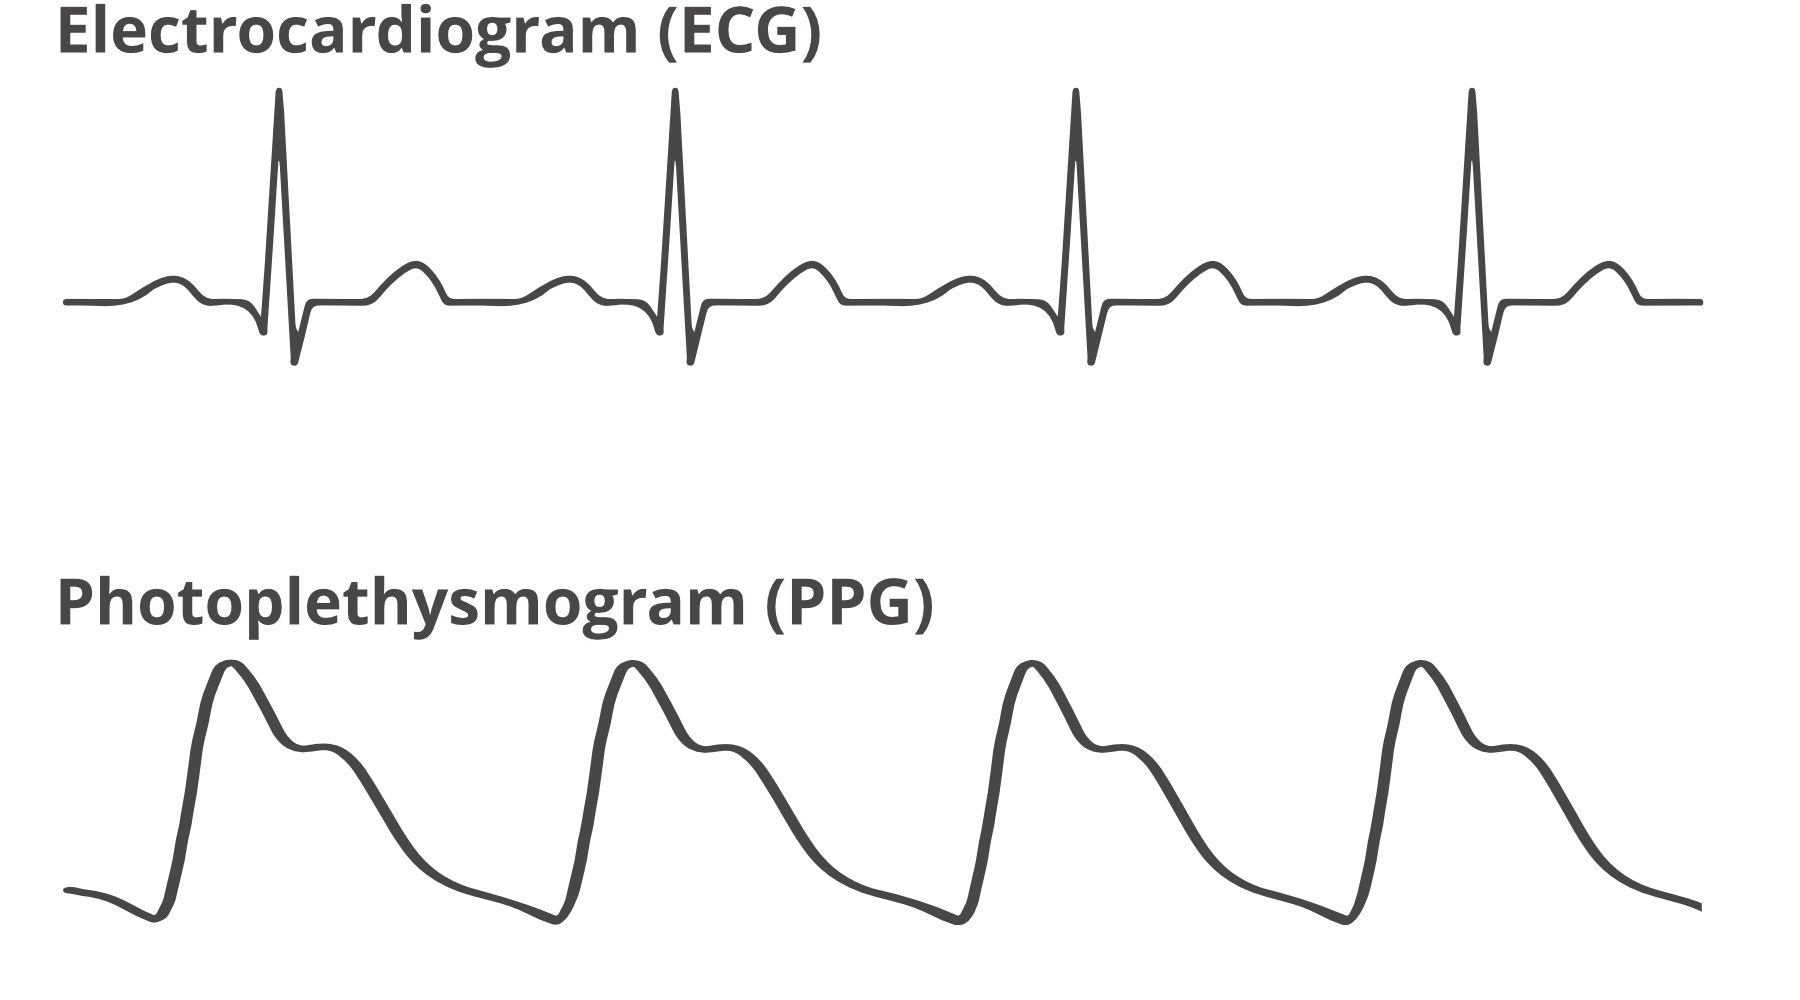 Physiologic Waveforms - Reading the data